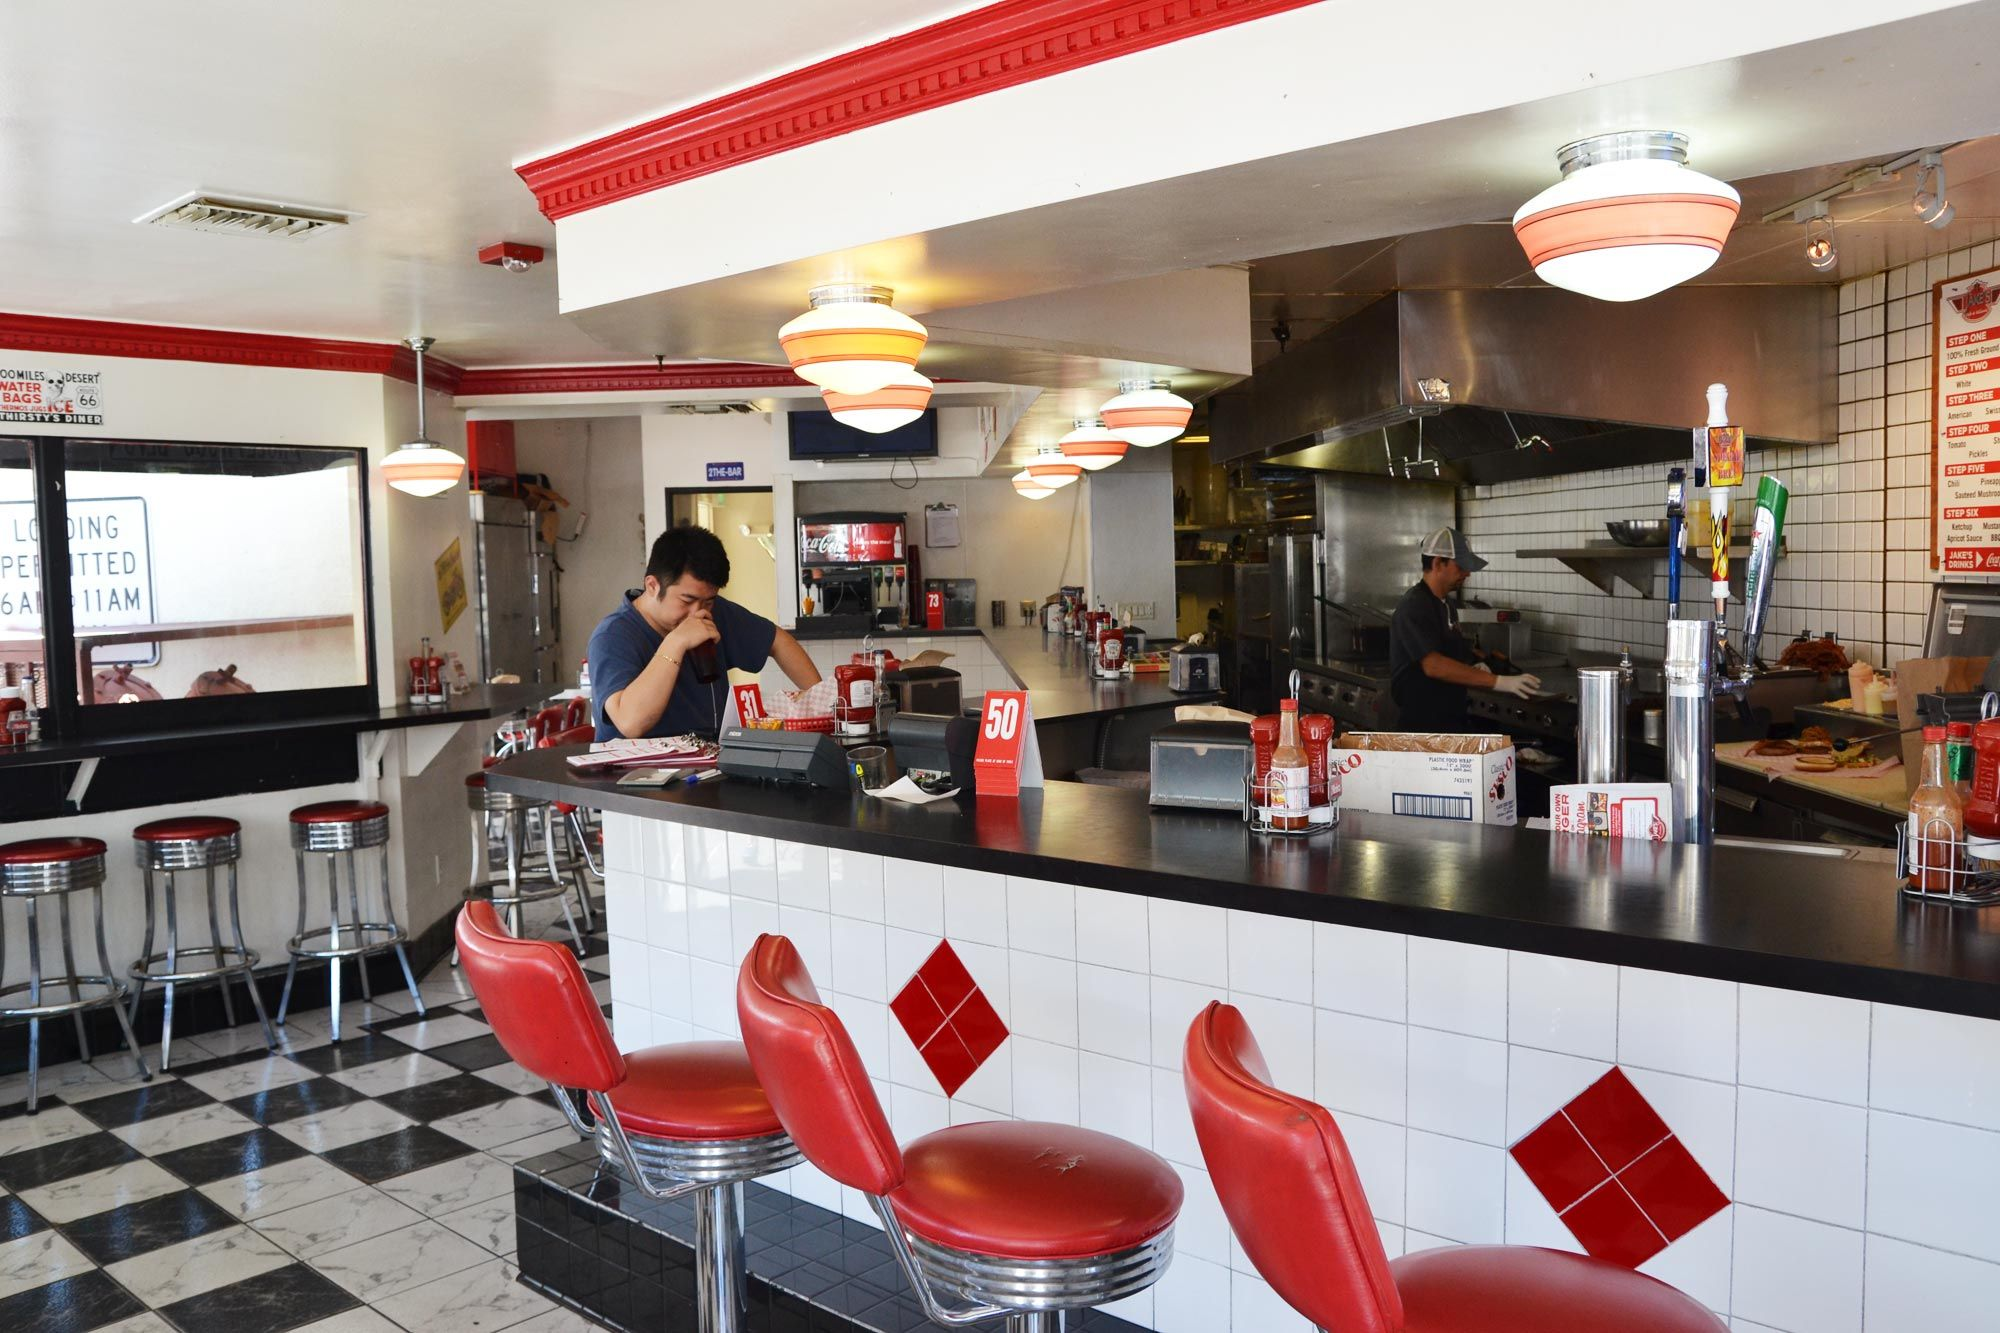 retro diner interior - Google Search | Furniture Design | Pinterest